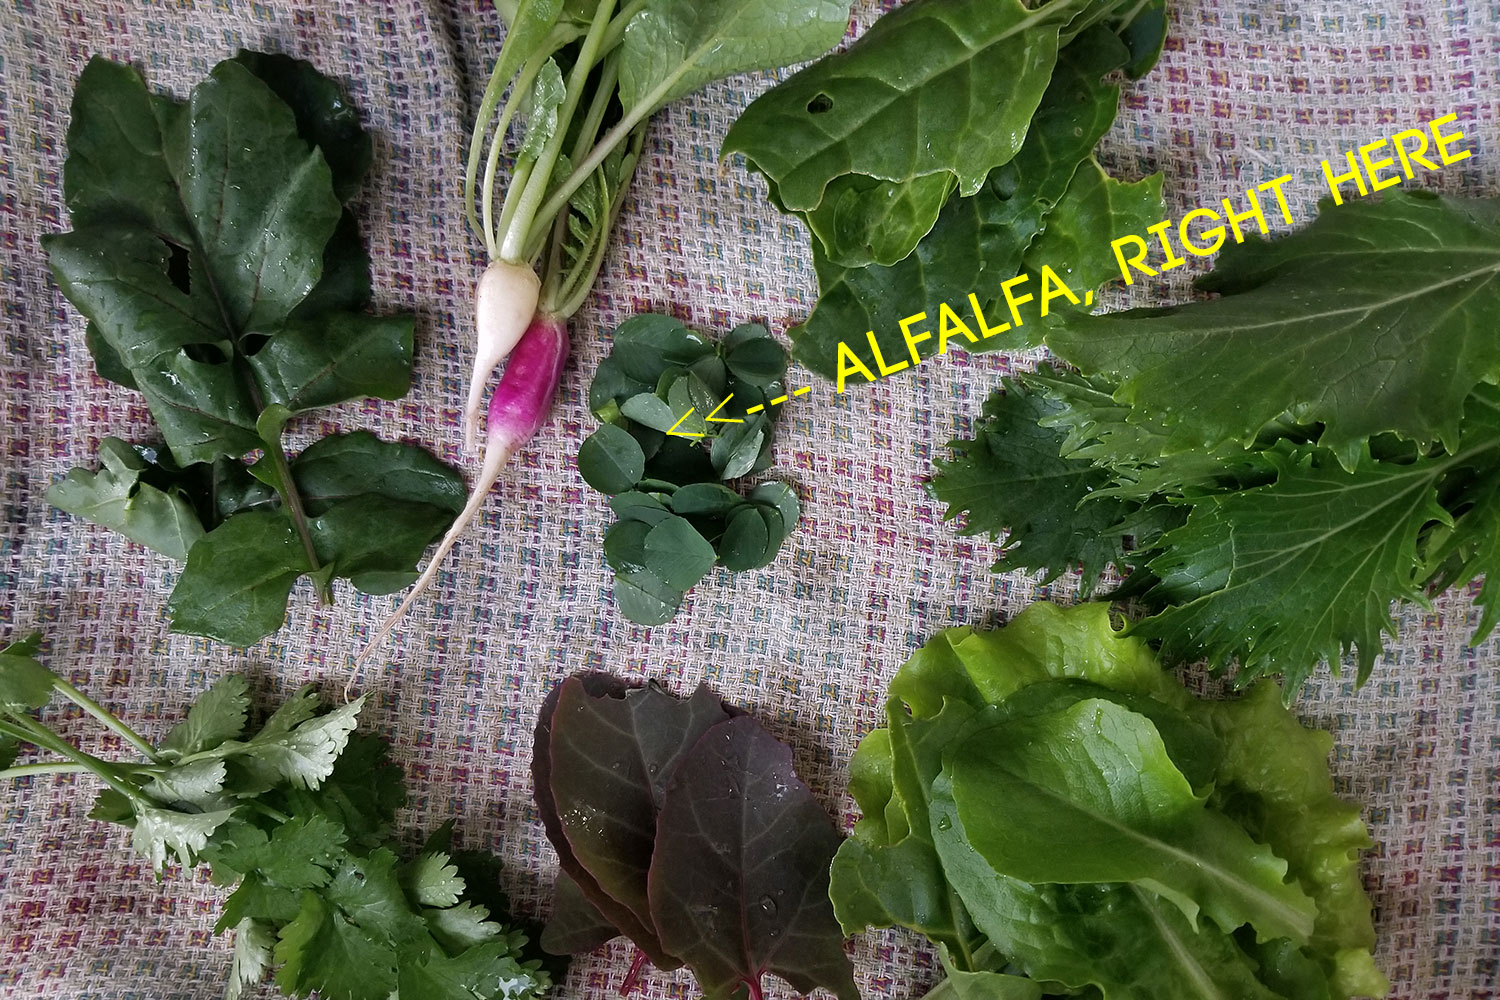 An array of backyard veggies including alfalfa